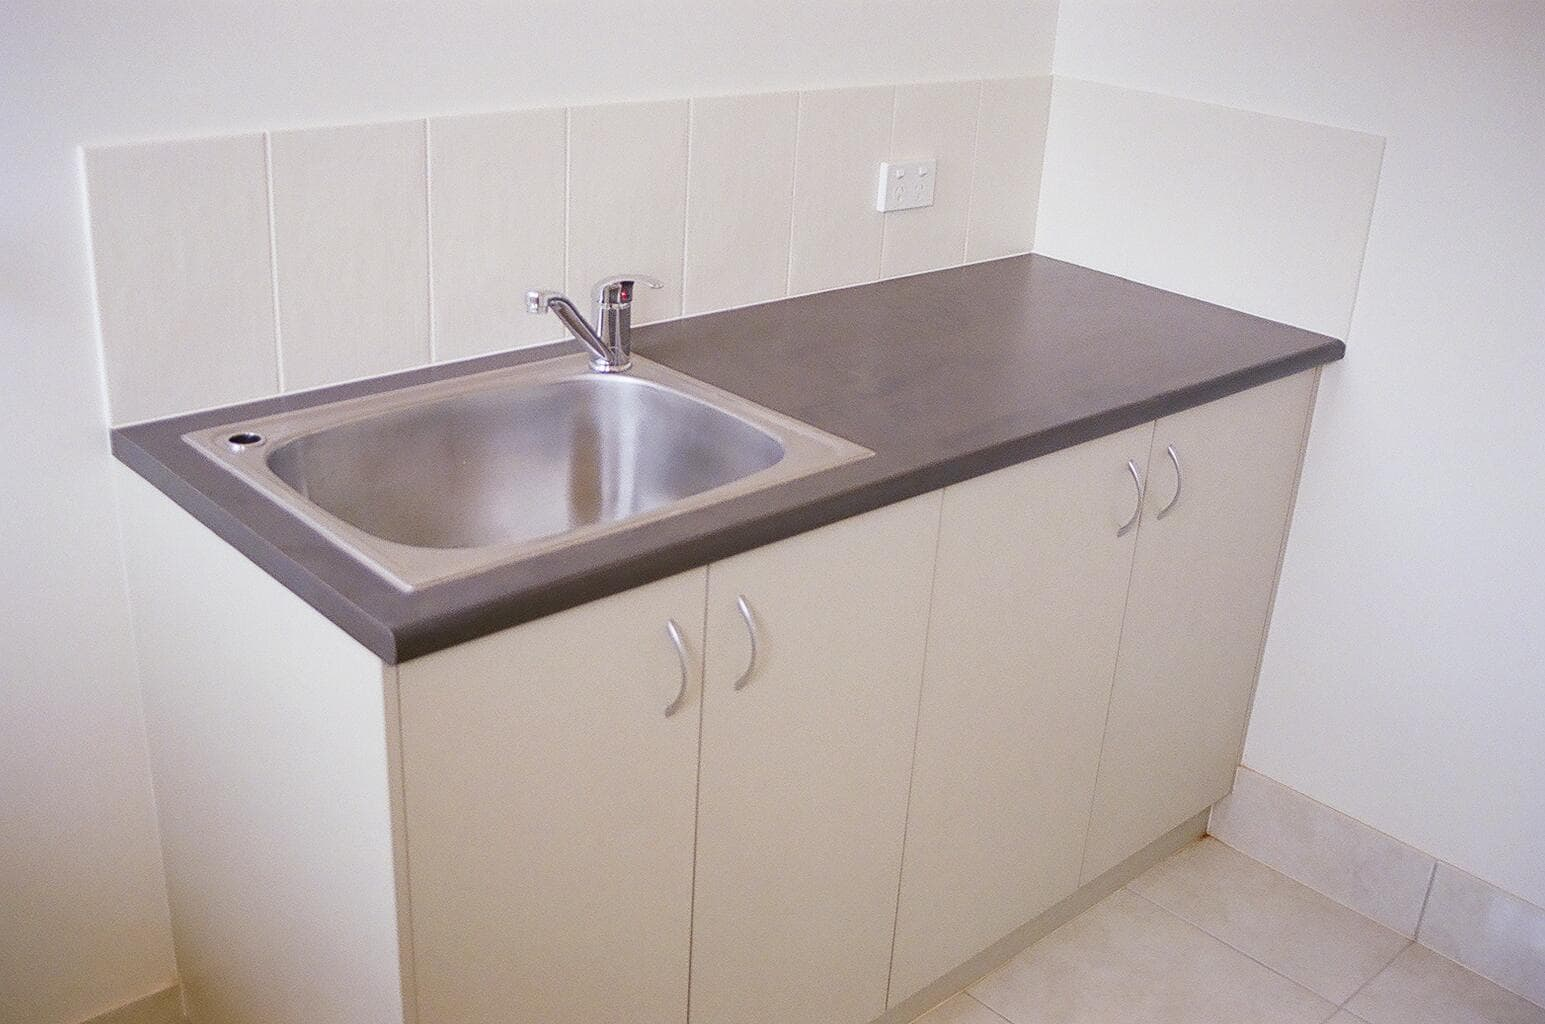 Built in Laundries - Chinchilla Kitchens 05